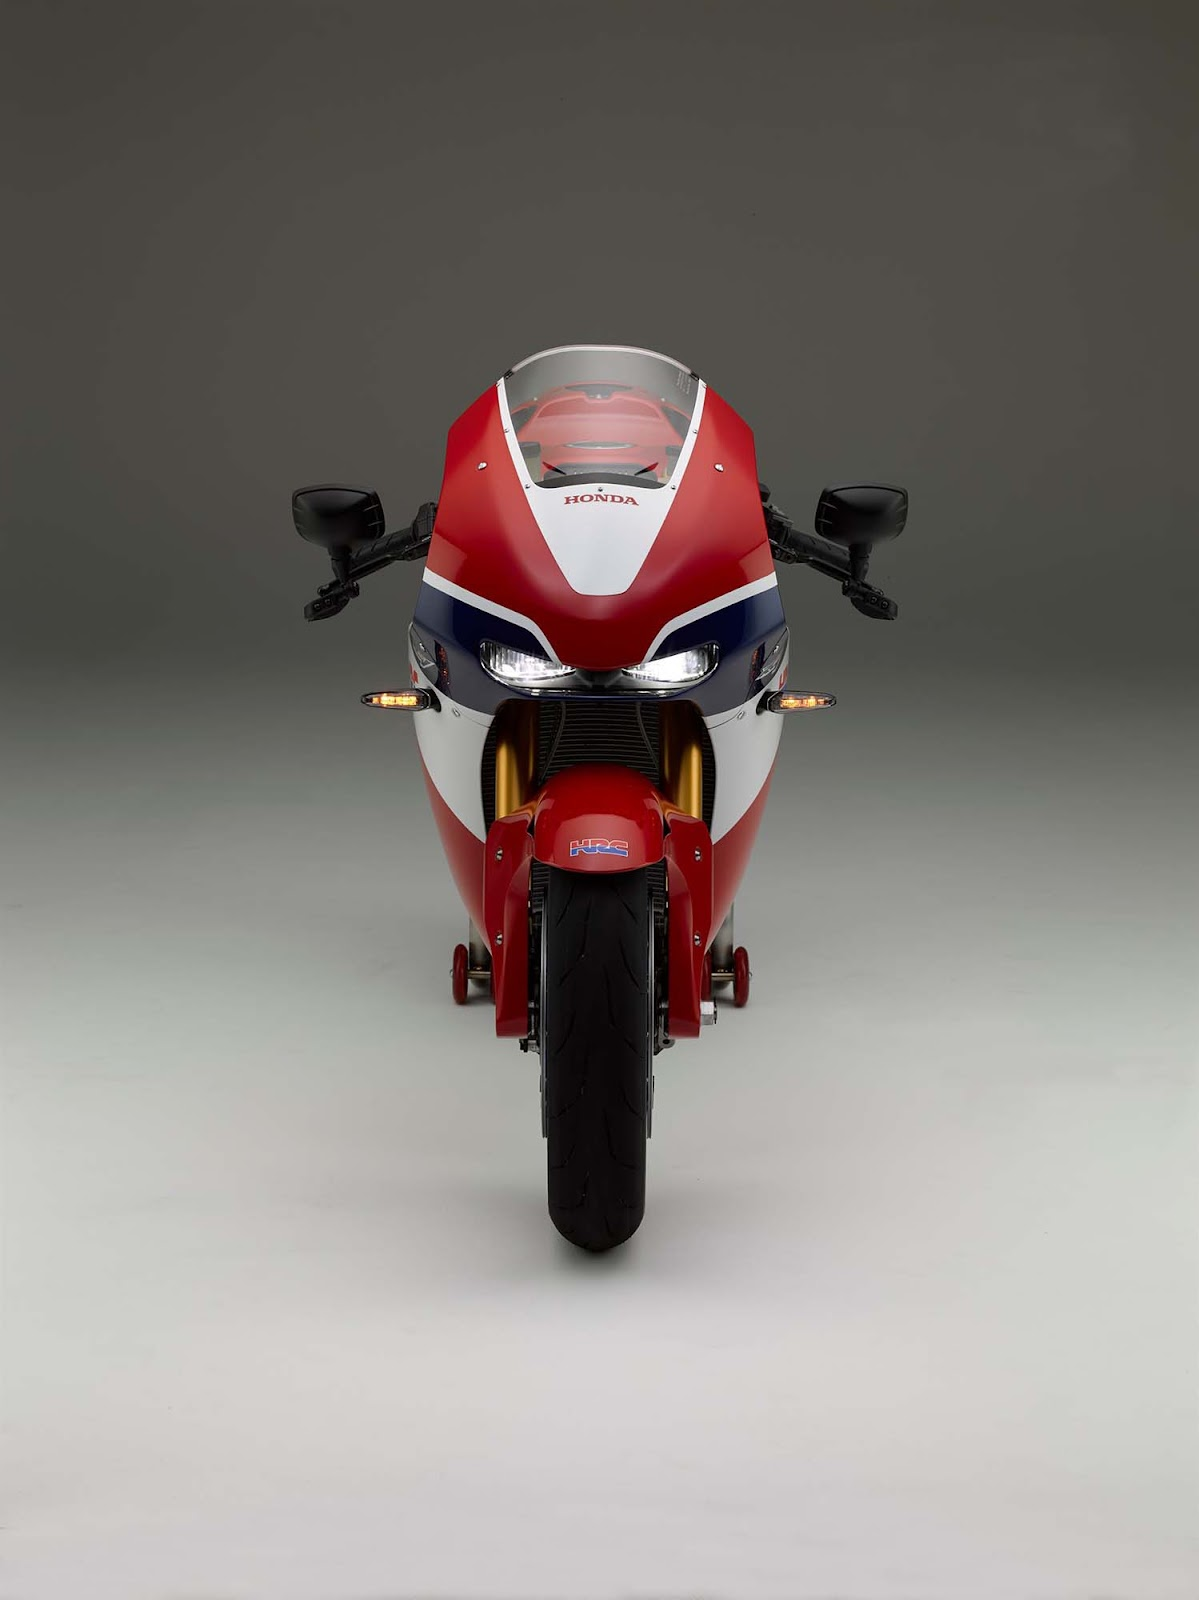 oddbike guest post the honda rc213v s what 39 s the point. Black Bedroom Furniture Sets. Home Design Ideas